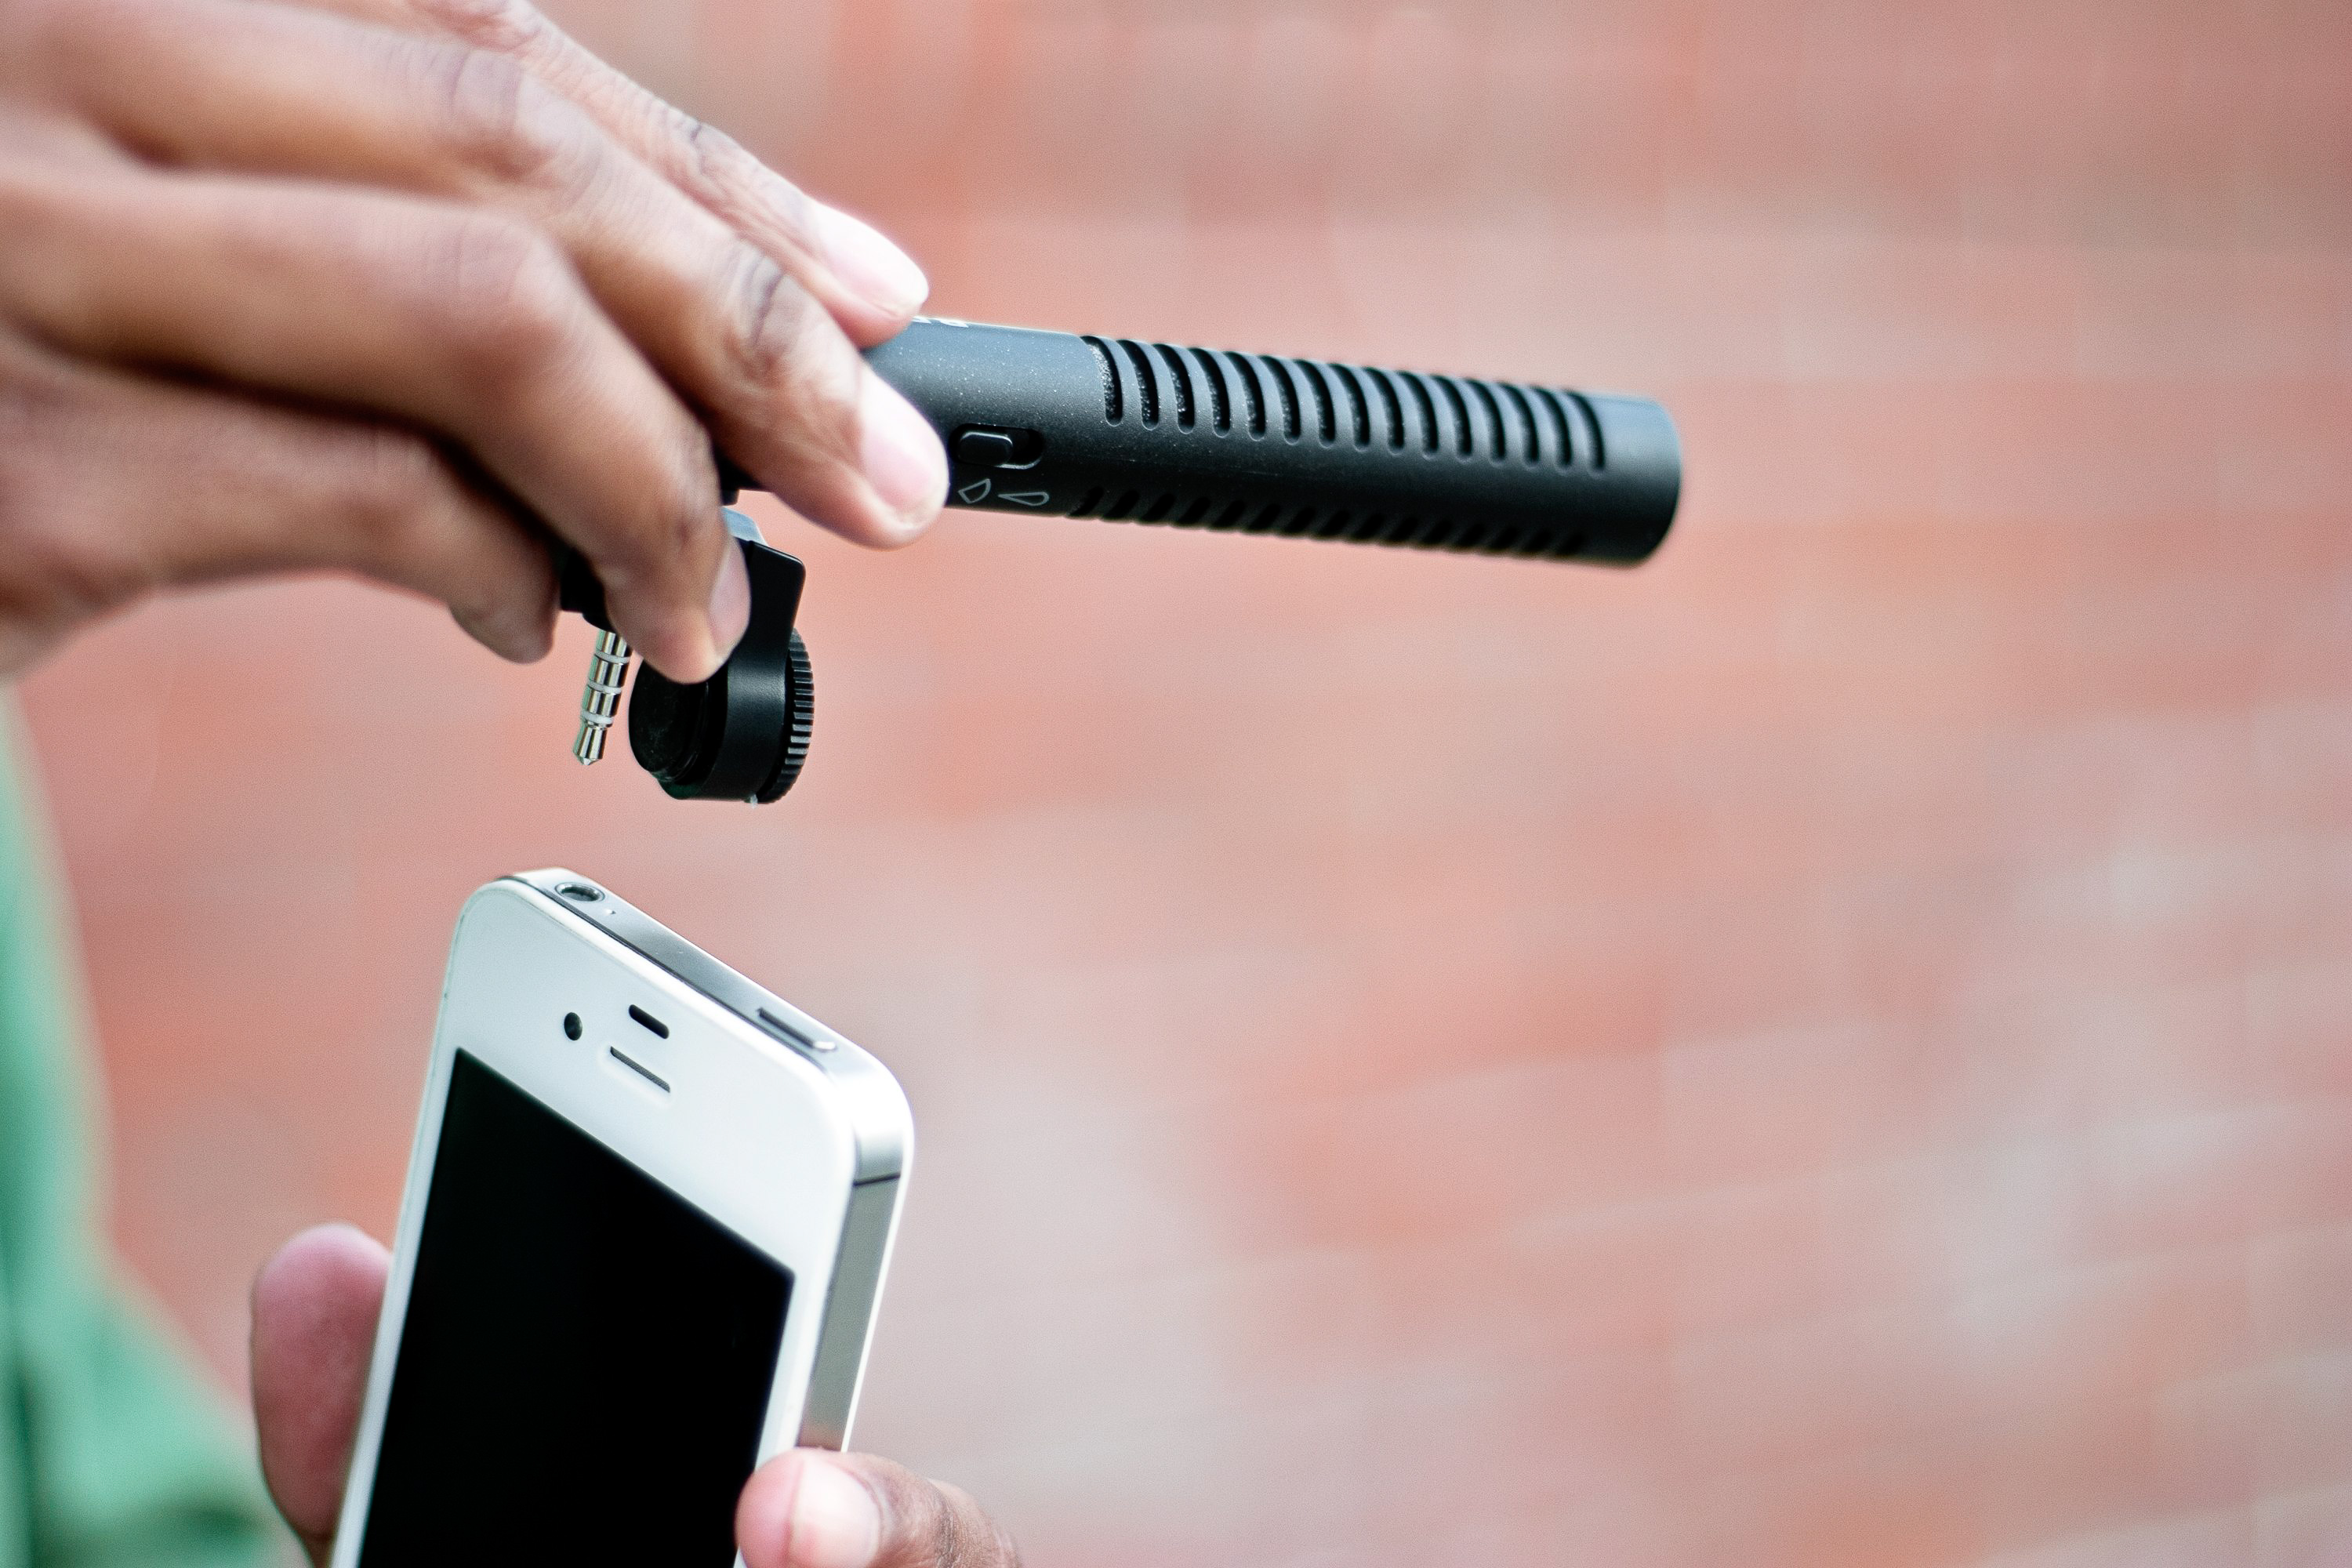 Shotgun Mic Delivers Directional Sound for your iPhone